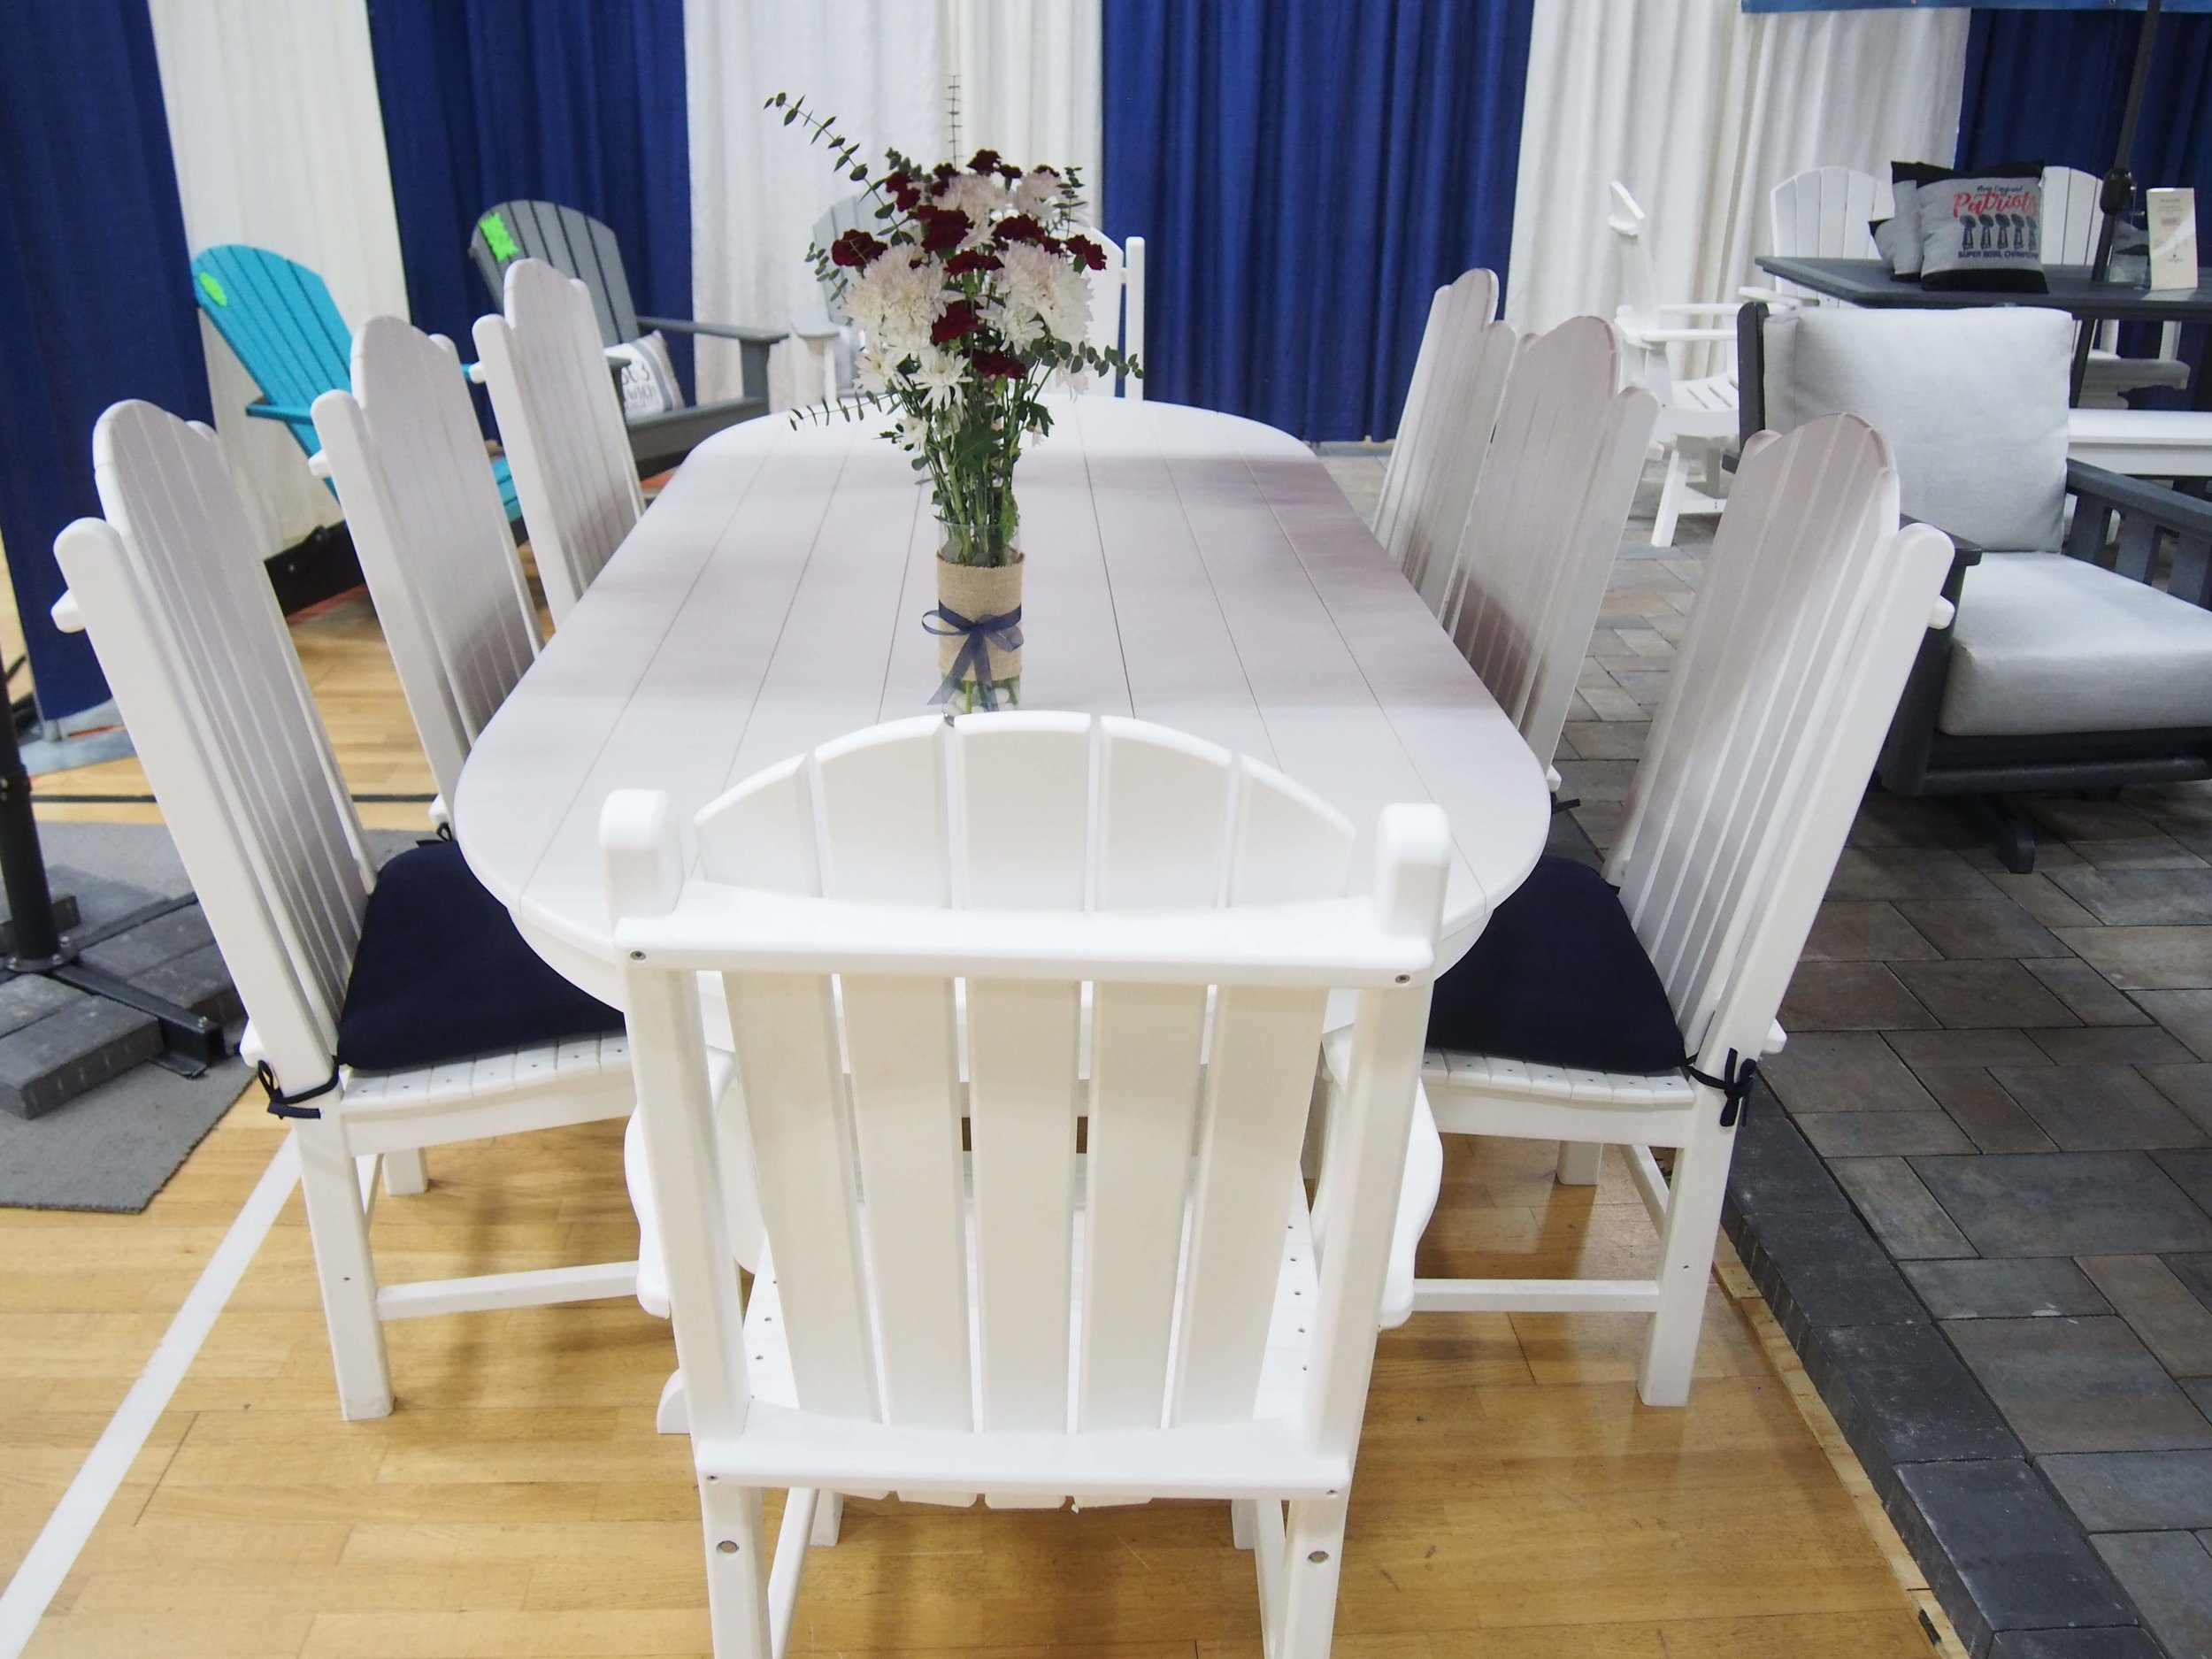 104 Oval w6 sides and 2 arms $3197.jpg